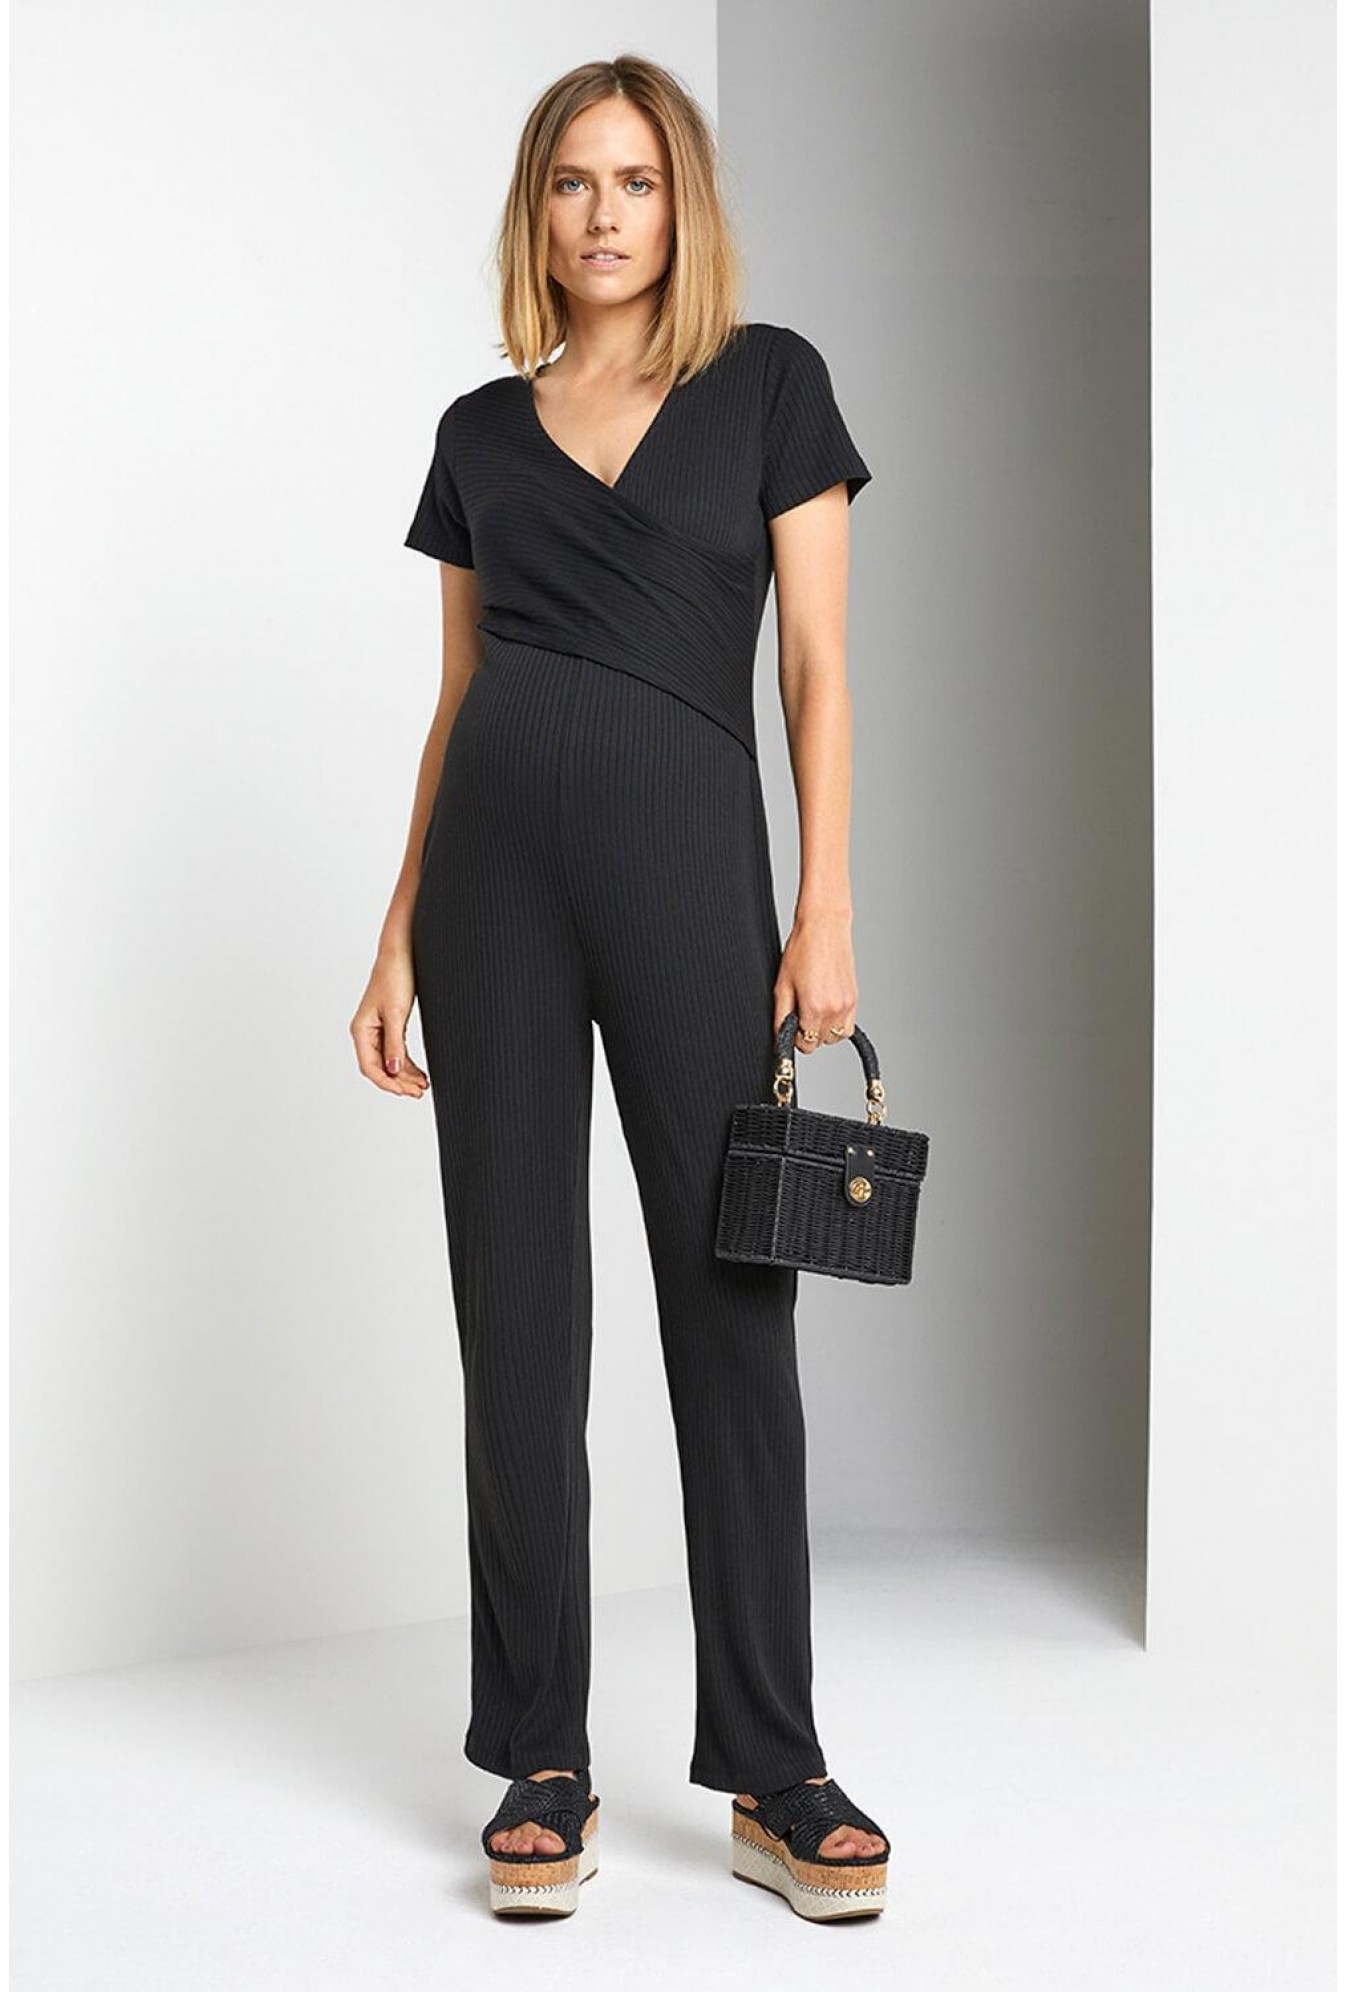 b505d4bb86f11 Noppies Maternity Jersey Jumpsuit in Black | iCLOTHING